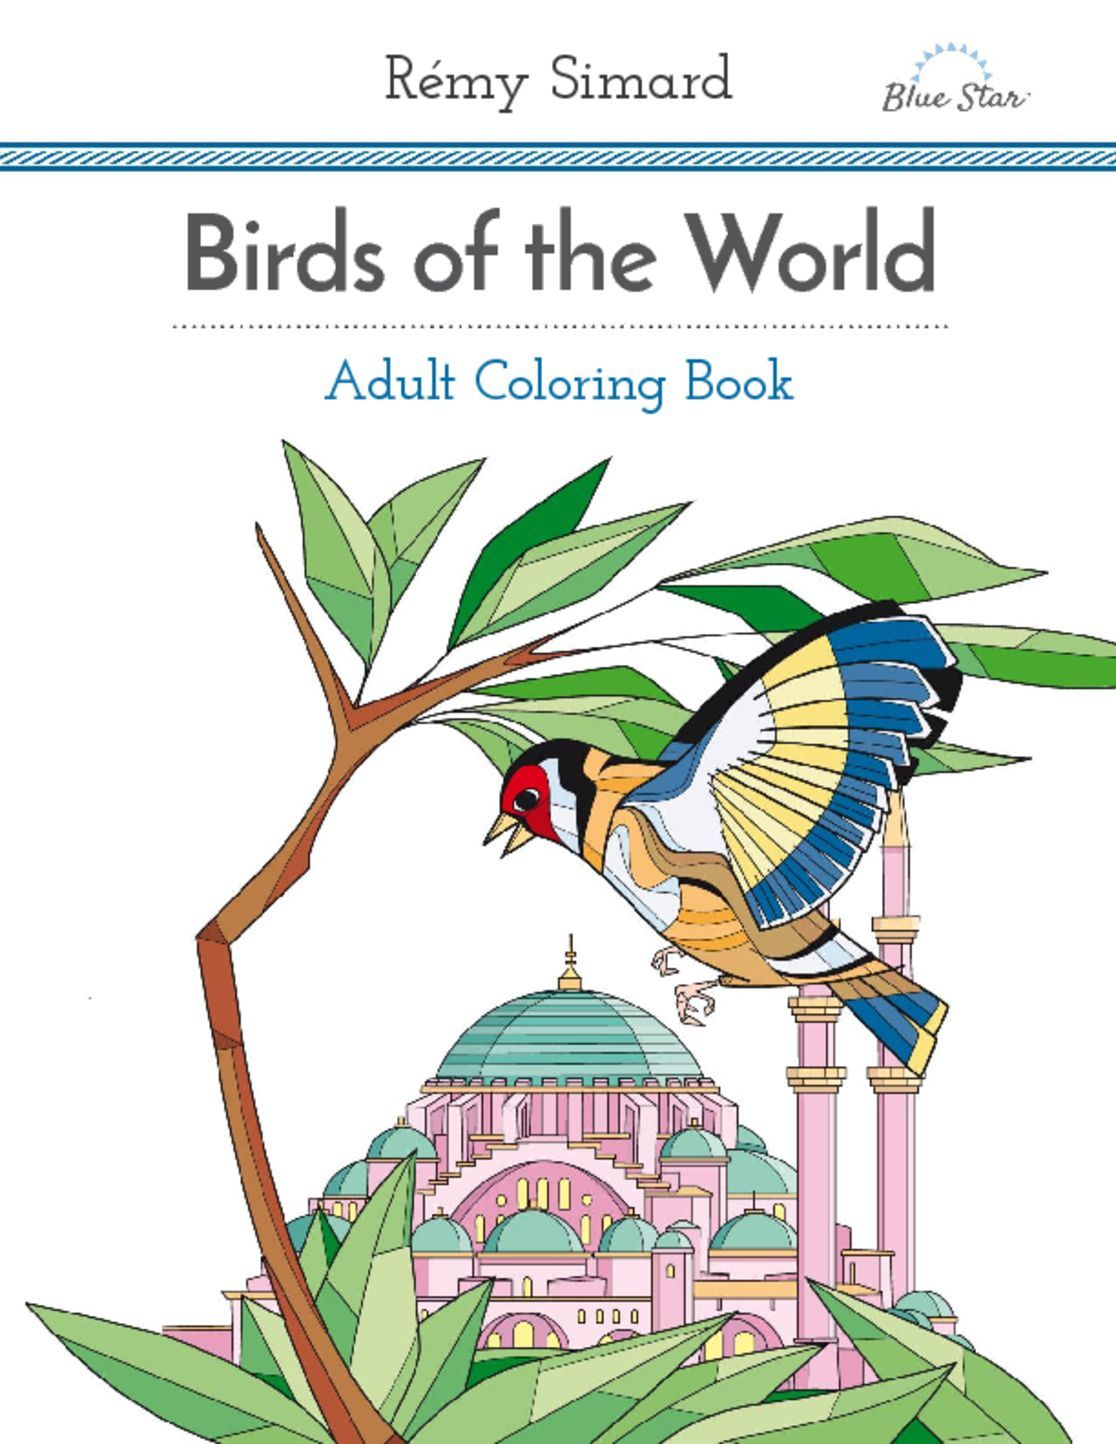 Adult Coloring Book Birds of the World Digital